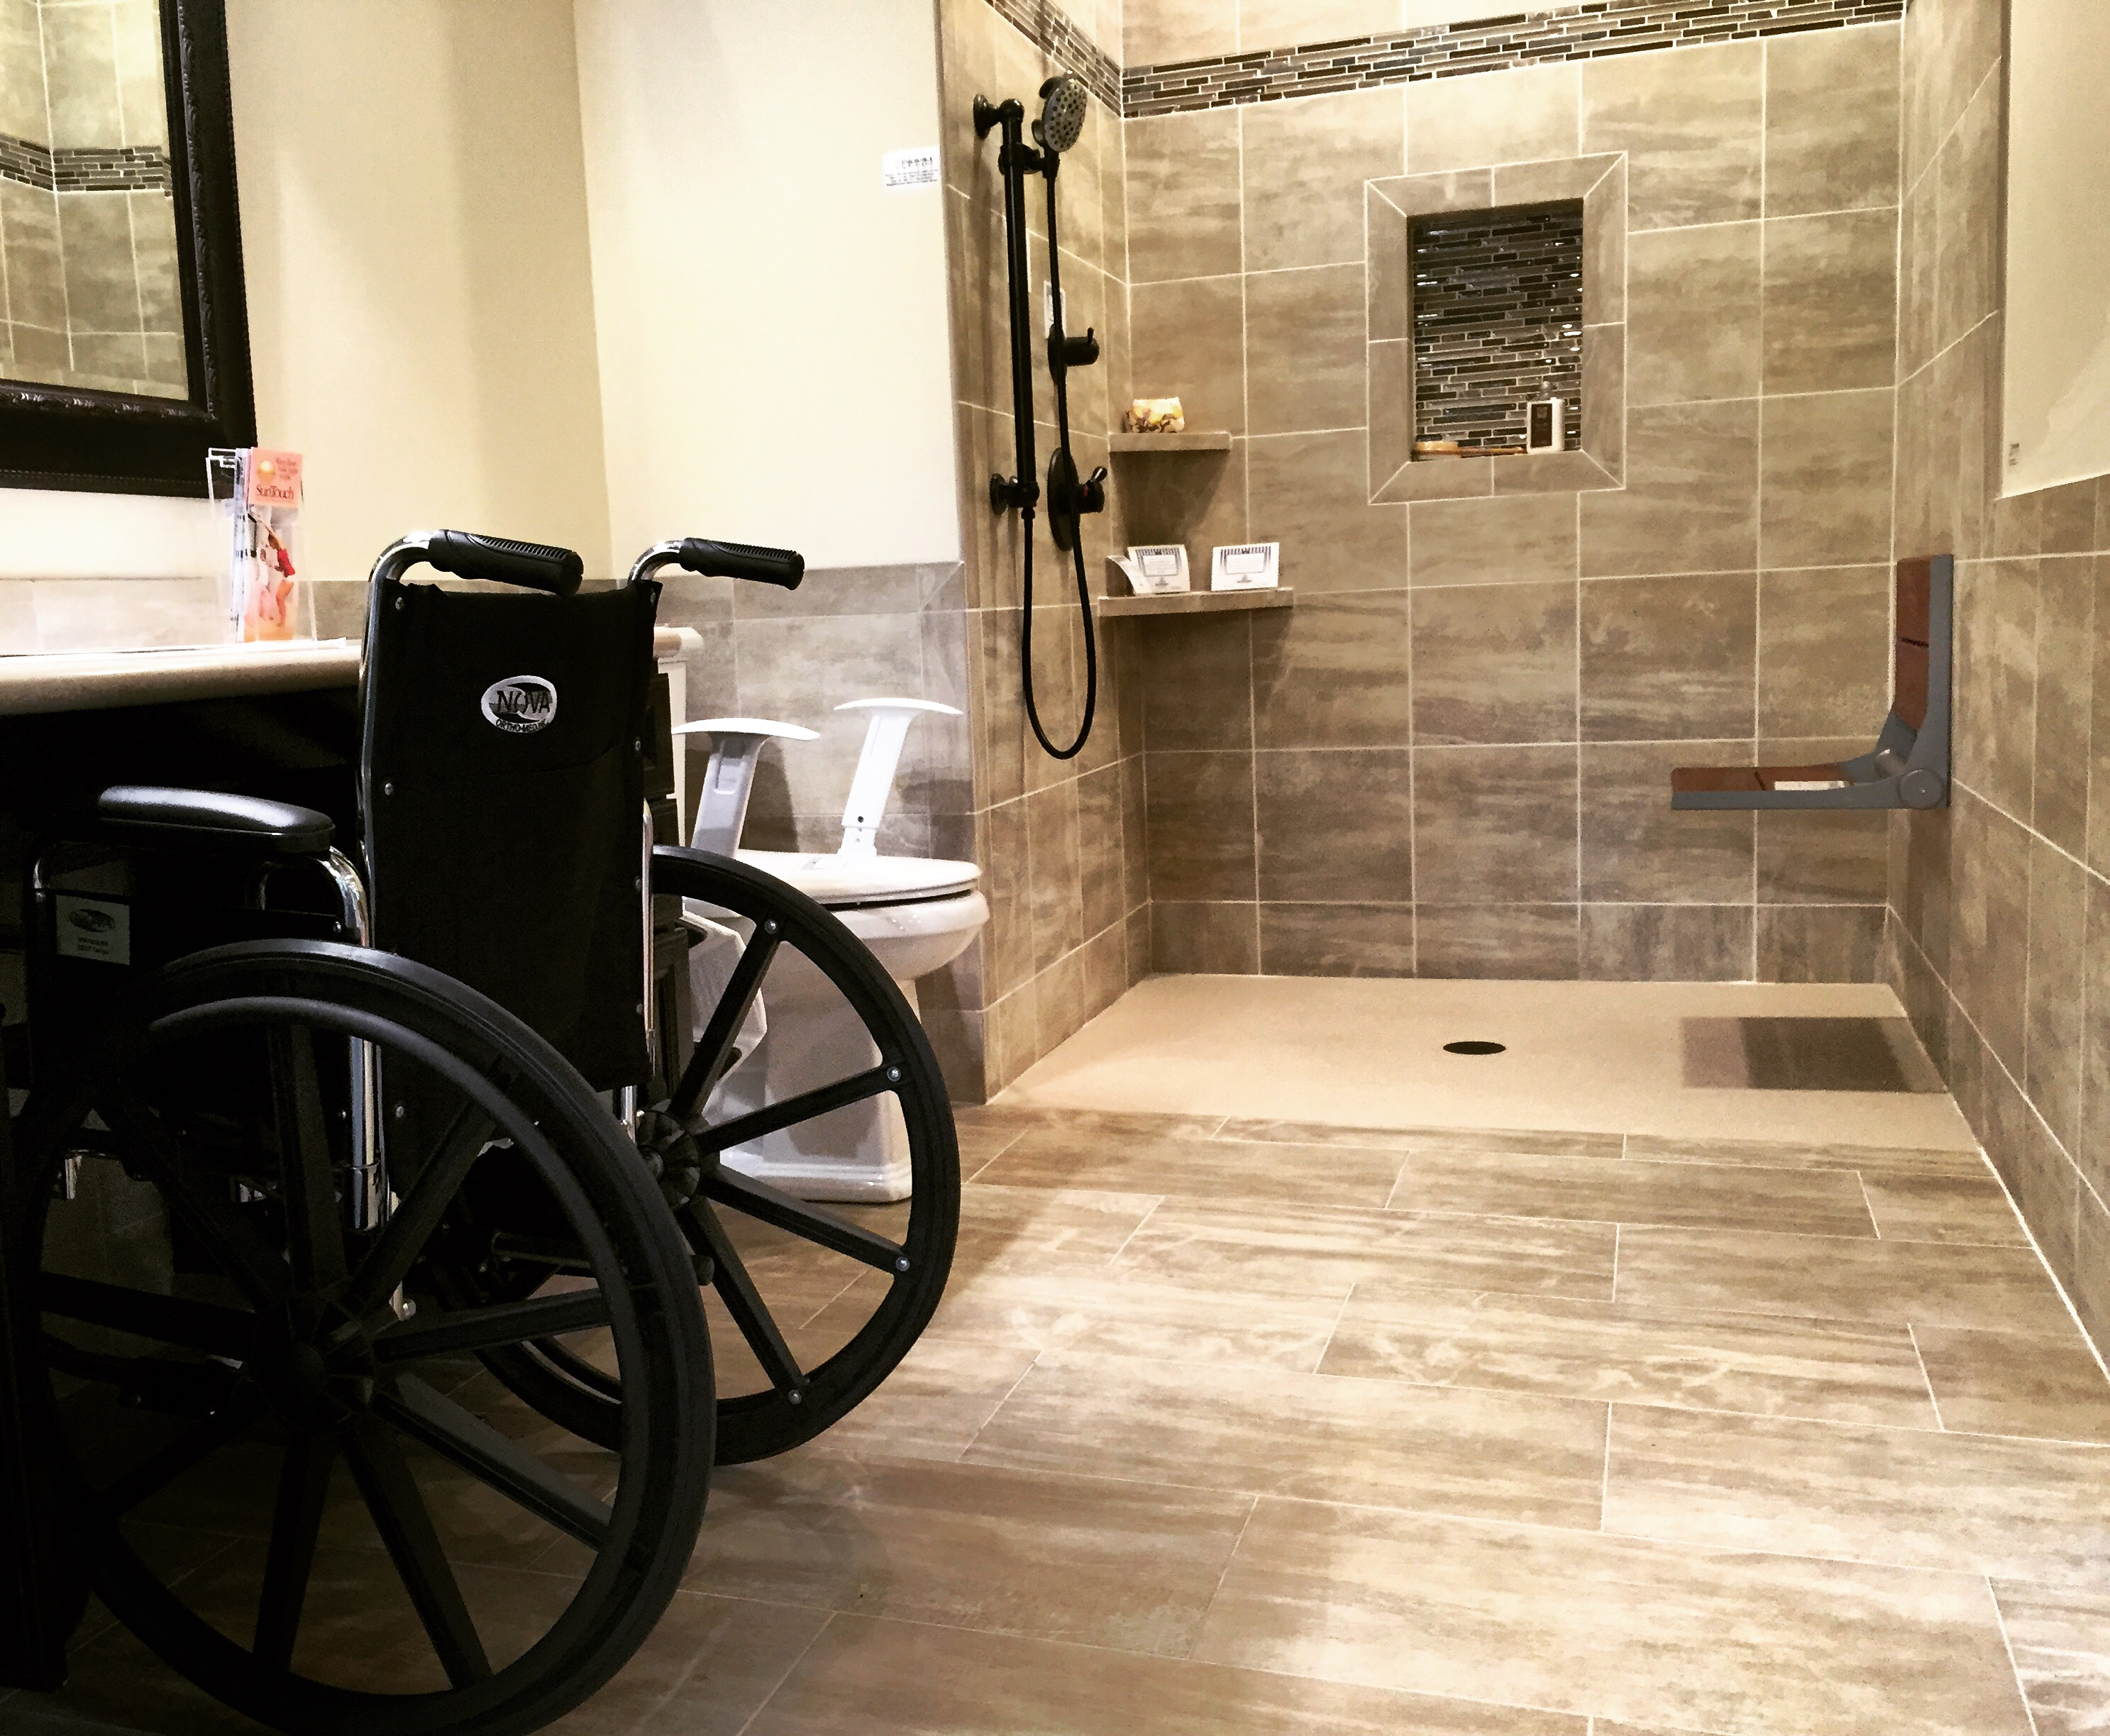 Handicap Accessible Remodeling By Ocala Restoration And Remodeling - Bathroom remodel for wheelchair access